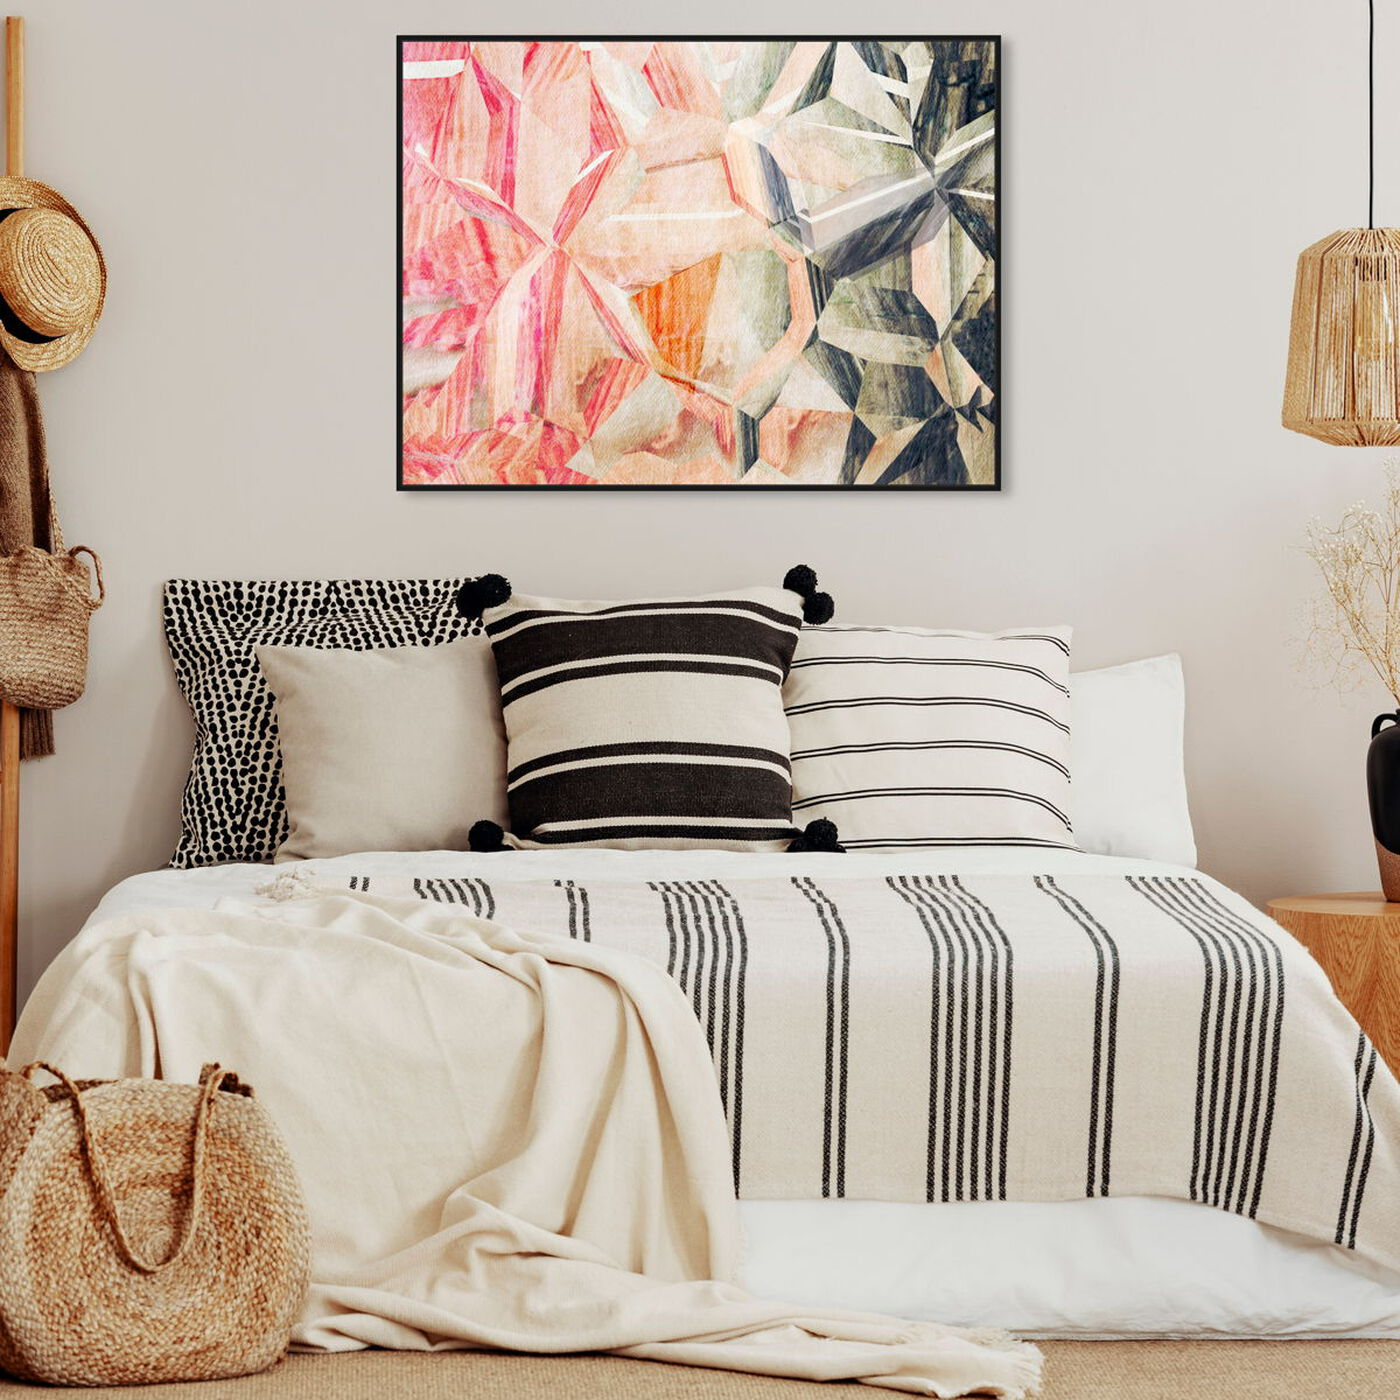 Hanging view of Beautiful Modern featuring abstract and shapes art.